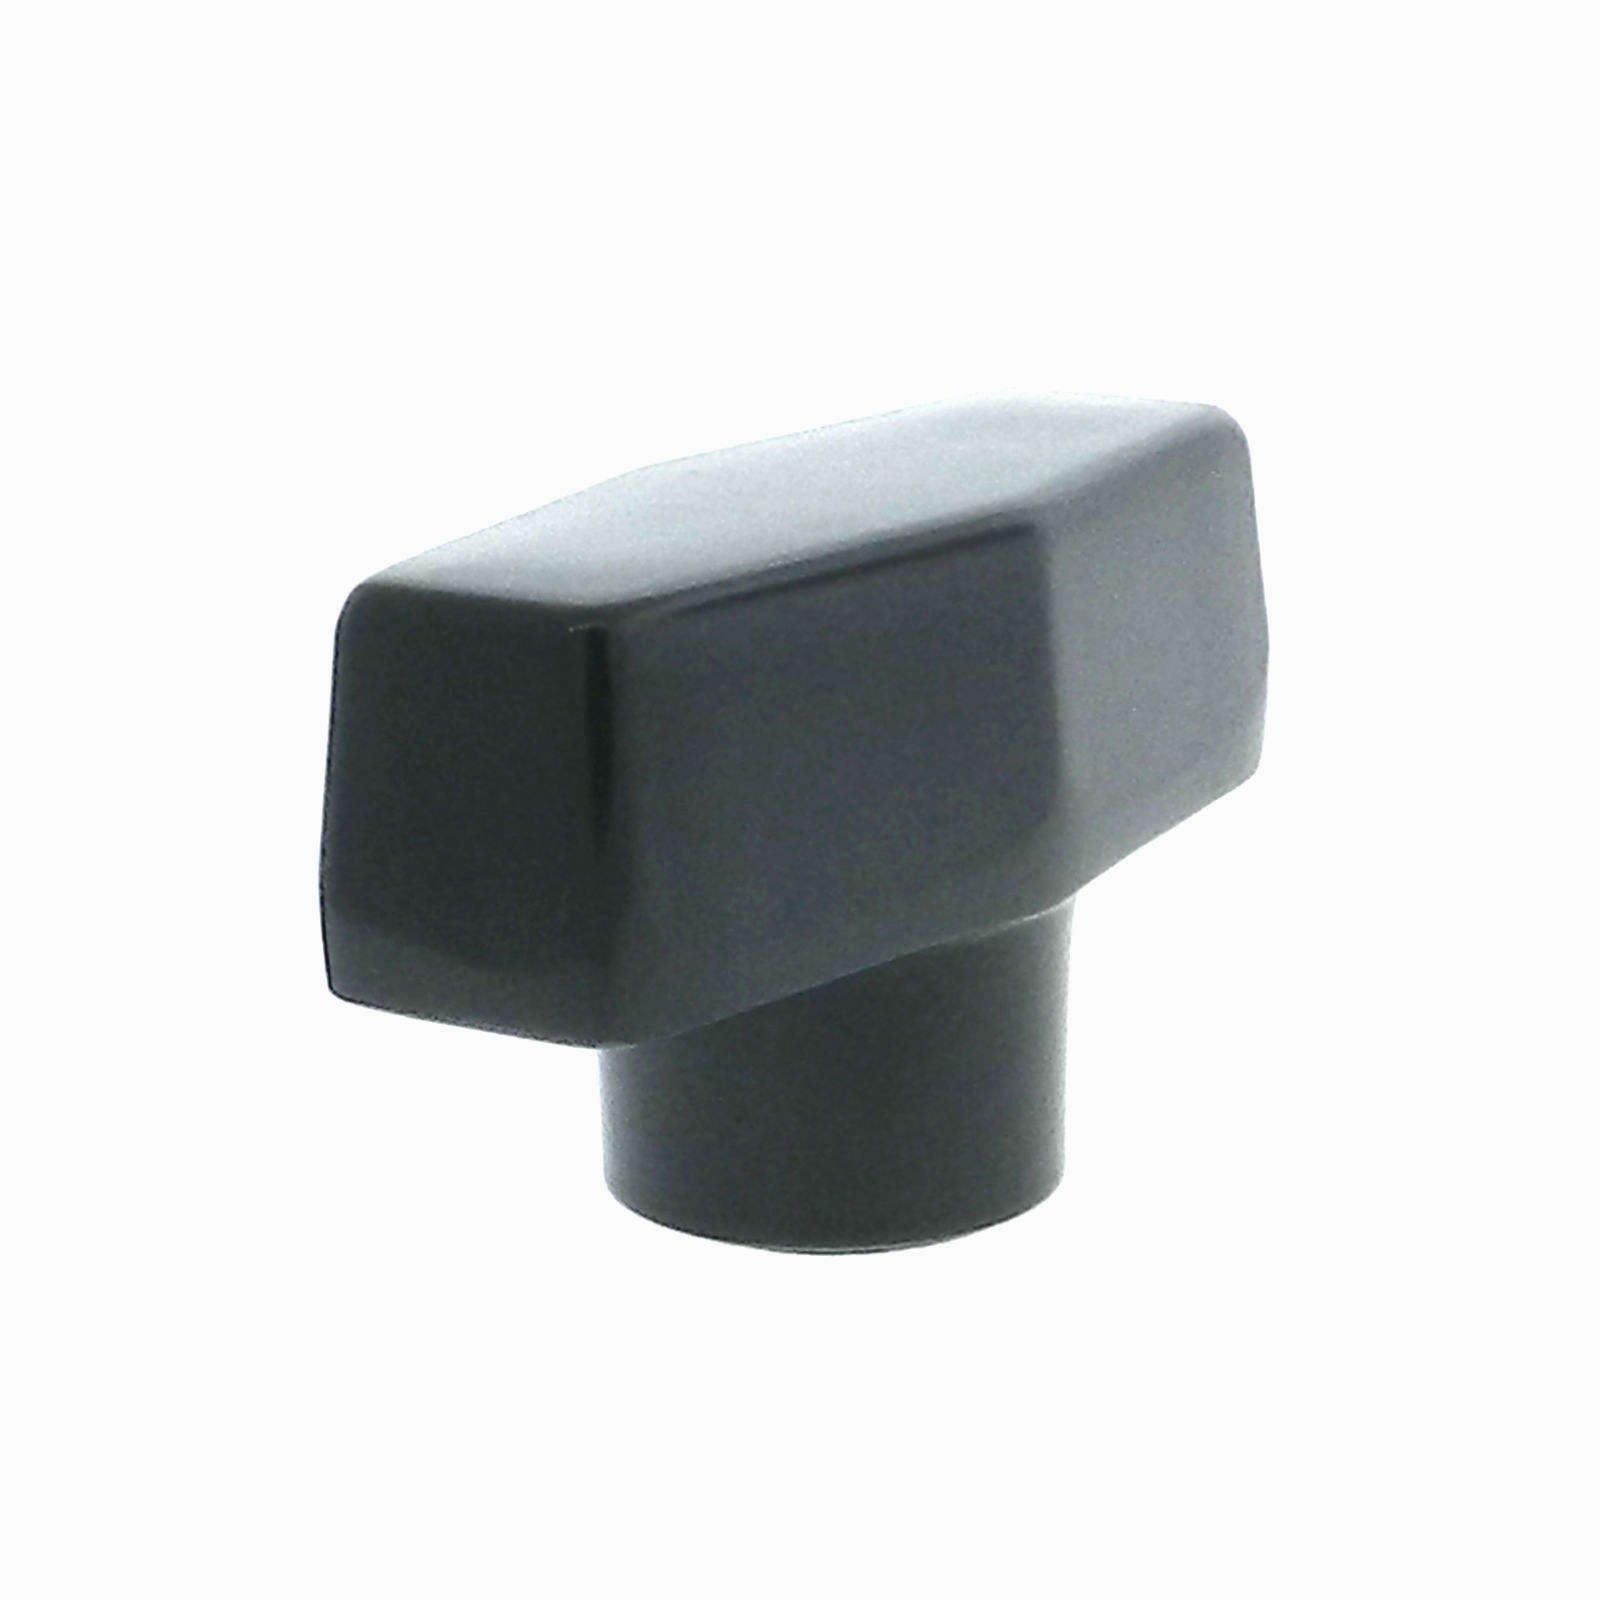 A t-handle phenolic hand knob with a tapped hole